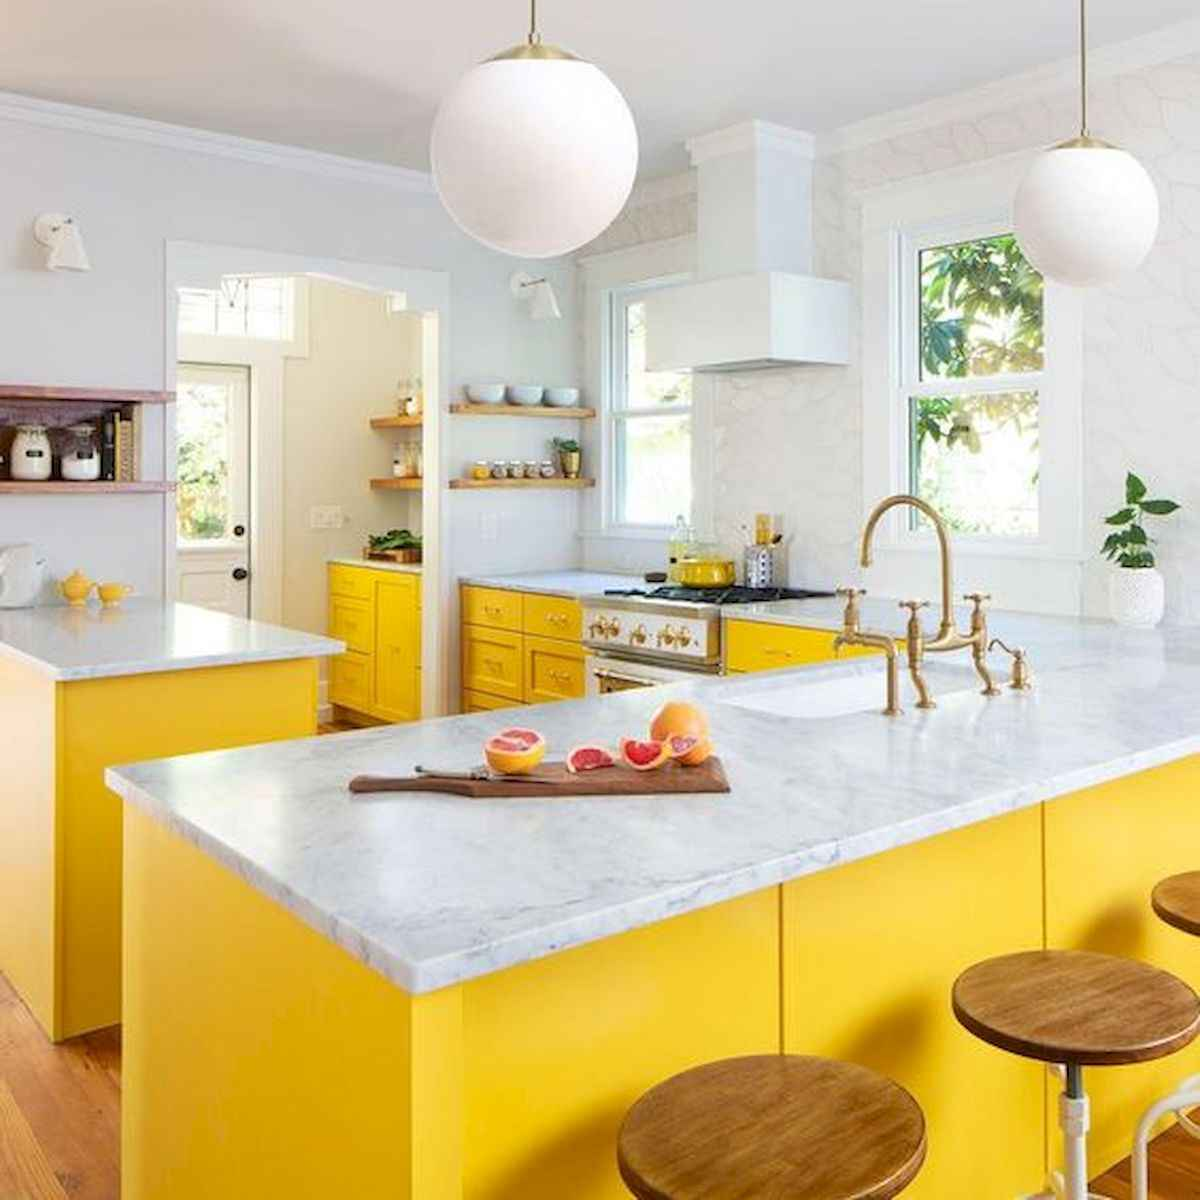 90+ Fantastic Colorful Apartment Decor Ideas And Remodel for Summer Project (43)